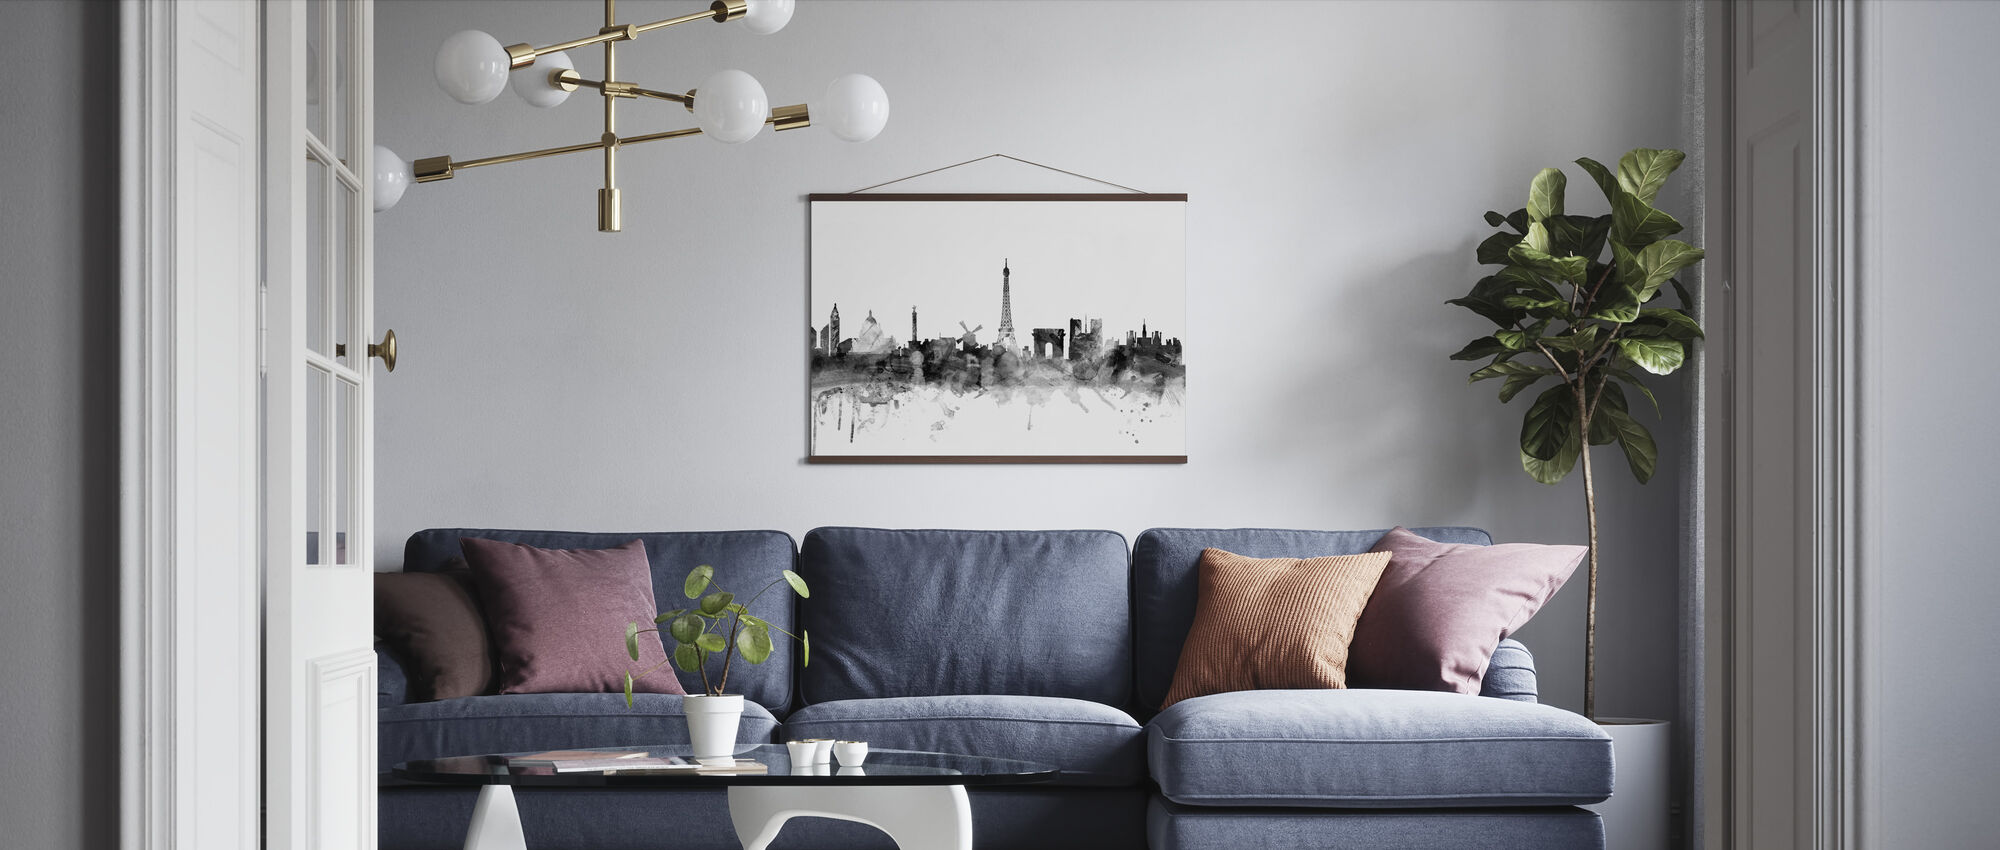 Paris Skyline Svart - Poster - Vardagsrum